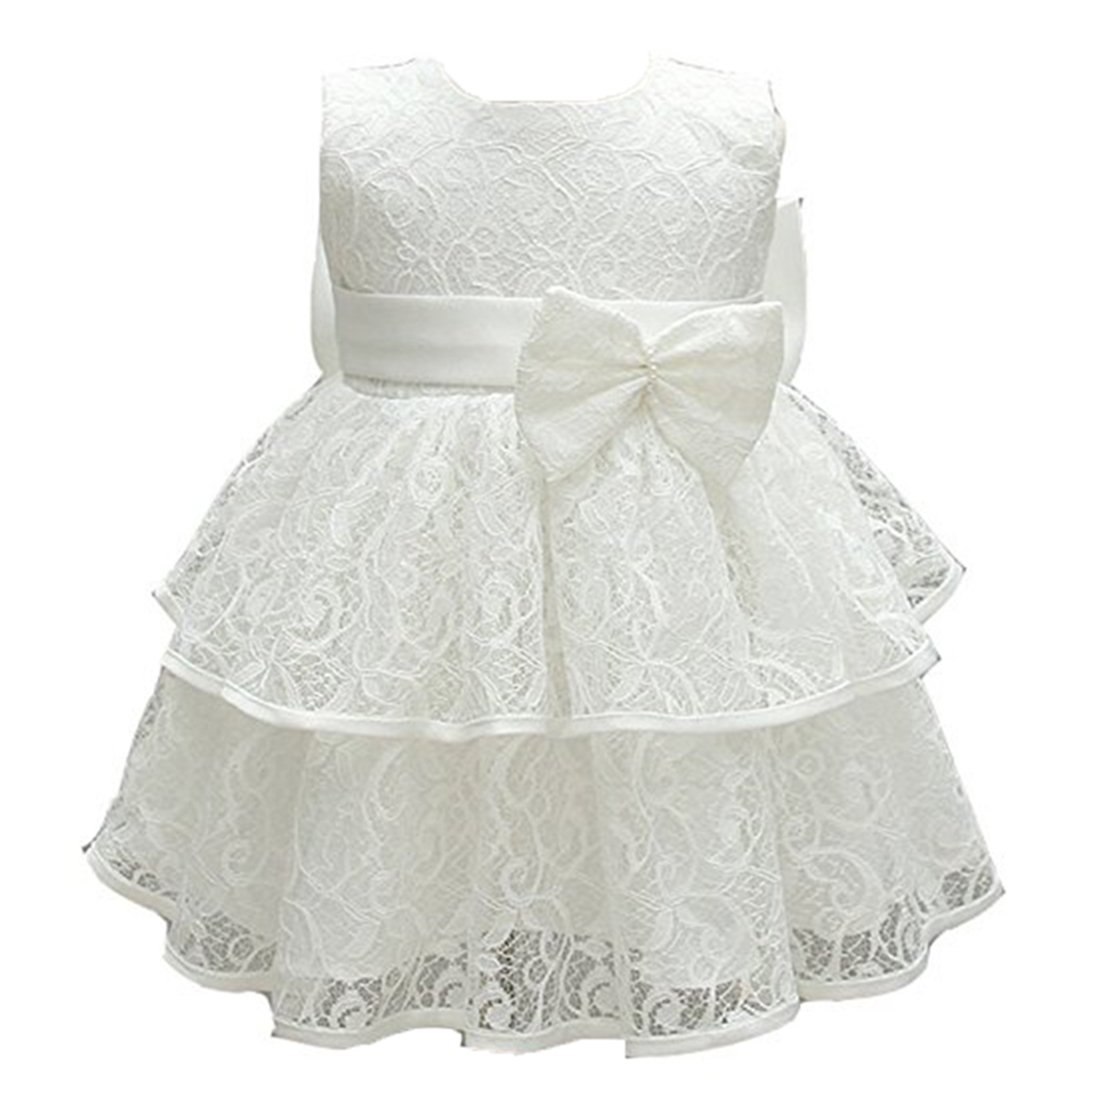 ADHS Infant Newborn Kids Baby Girl Flower Prom Wedding Gown Princess Dress